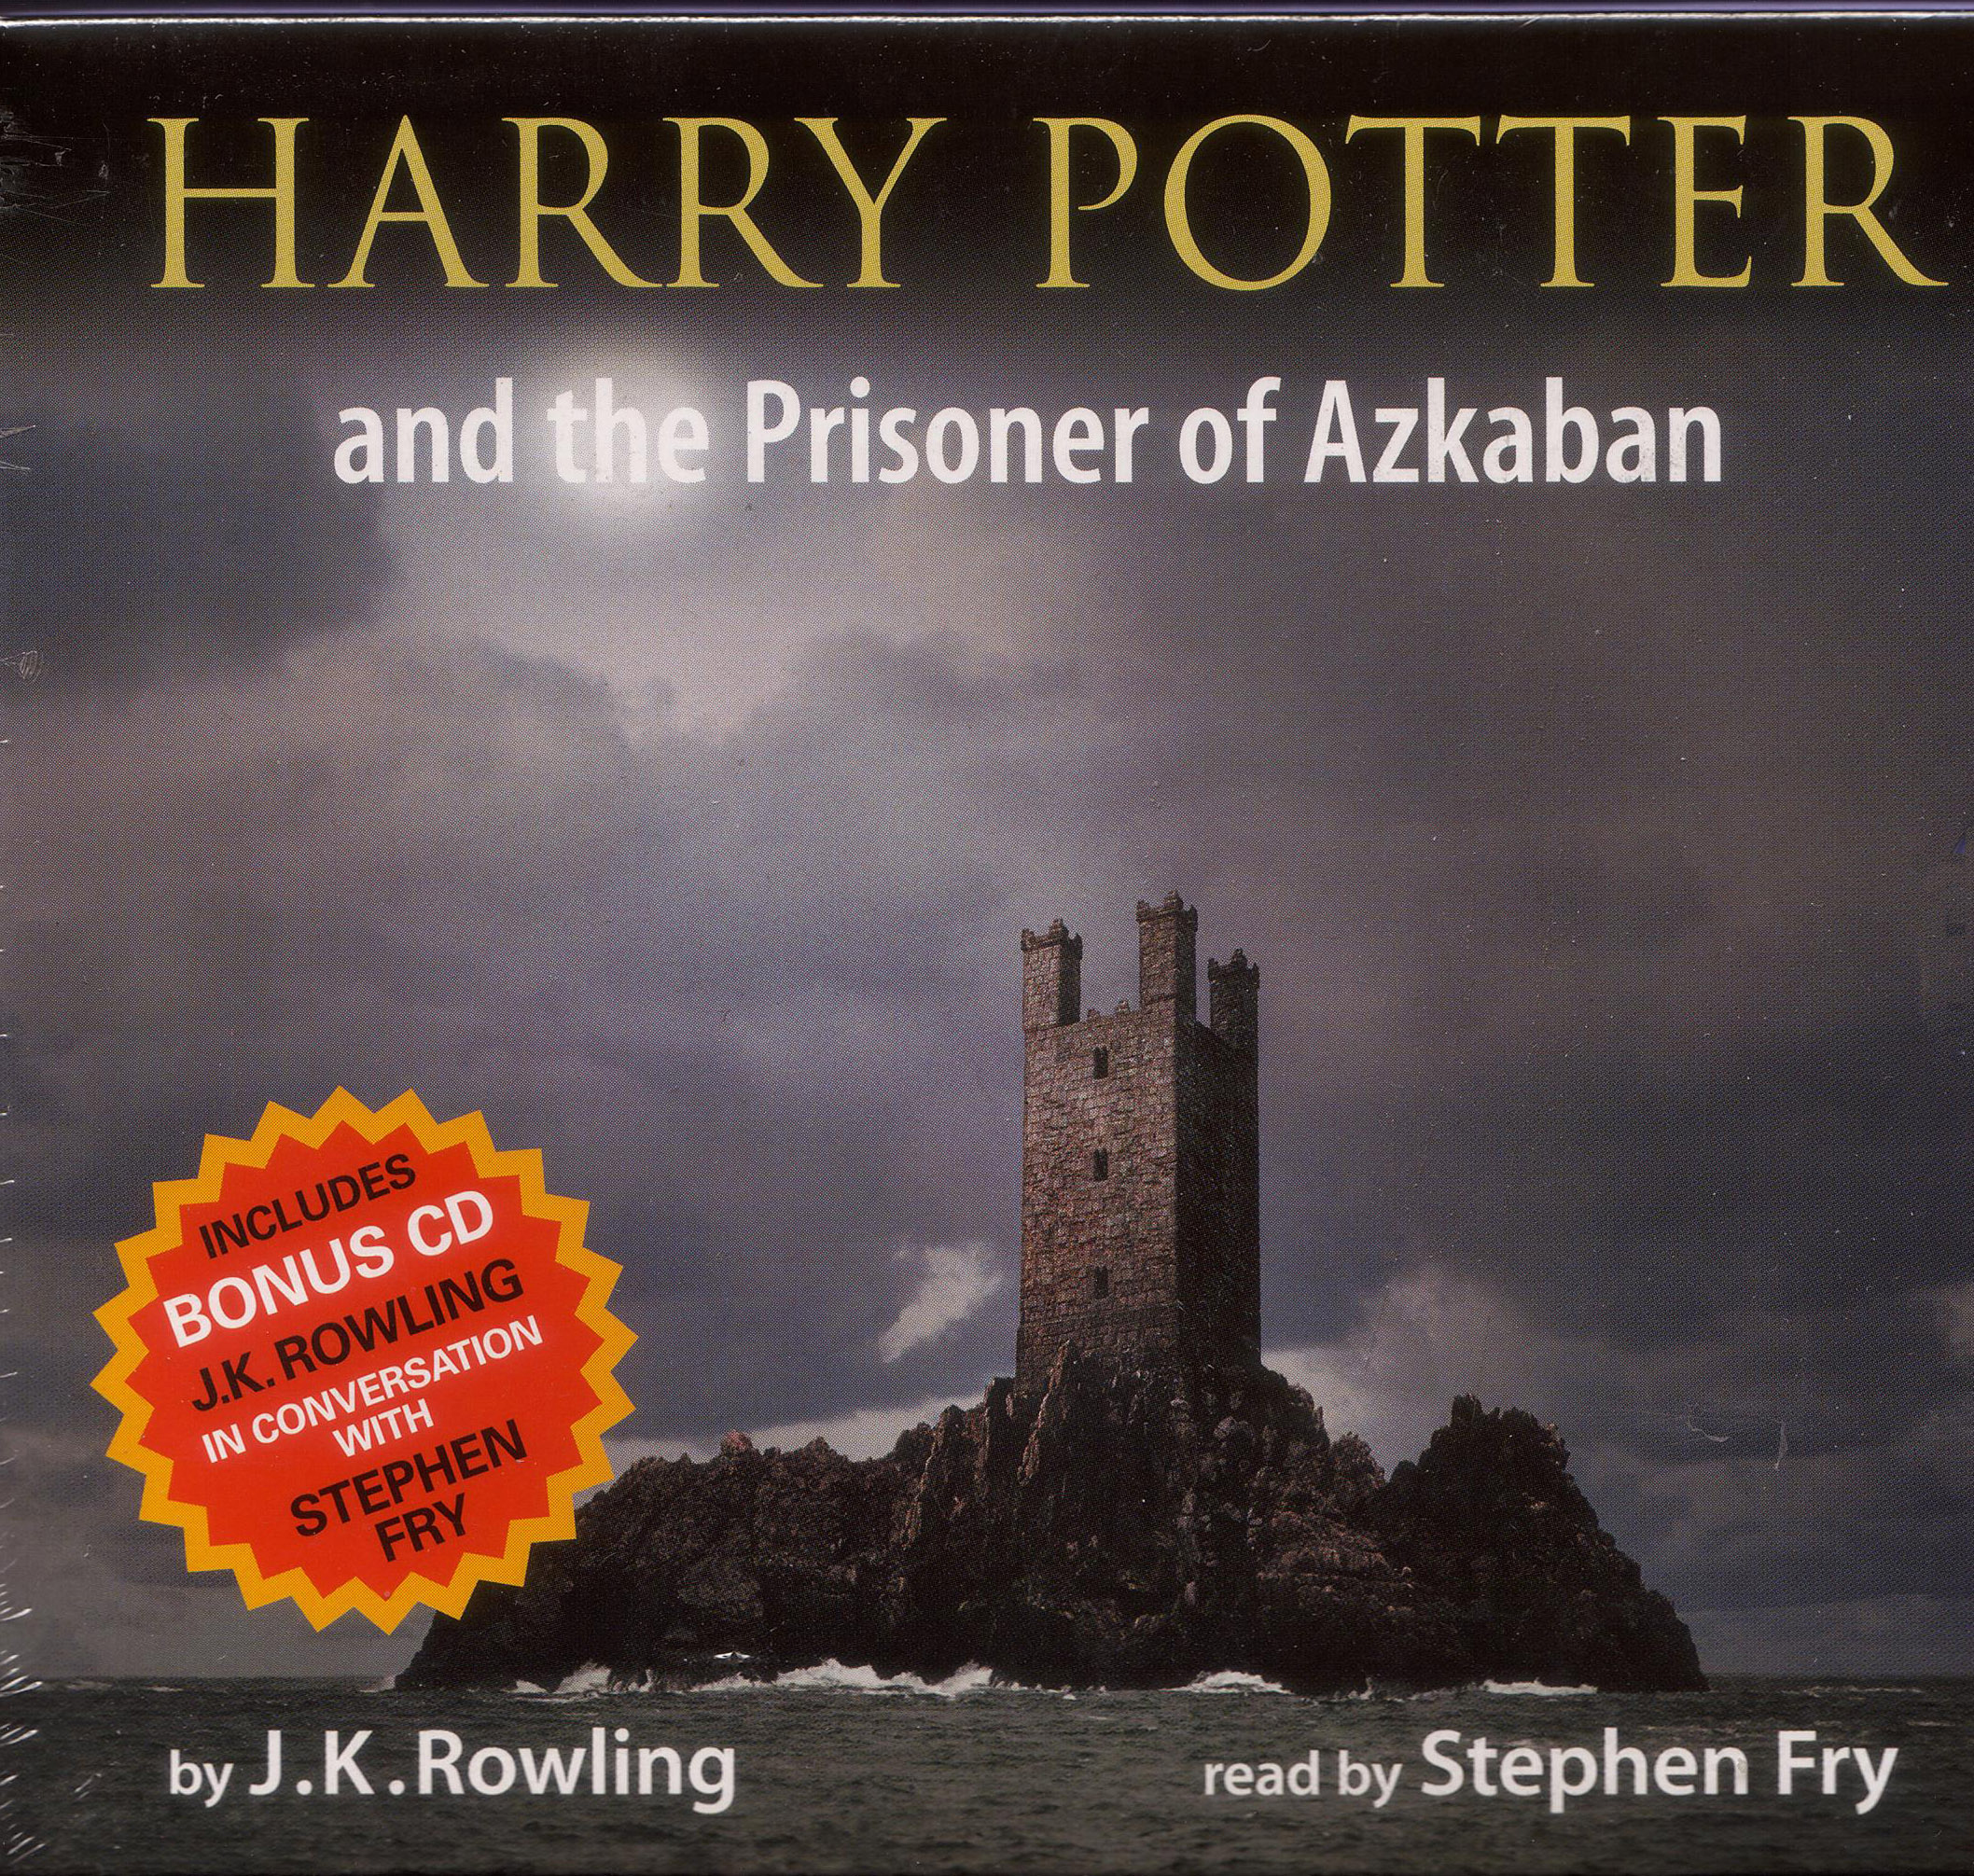 an analysis of the book harry potter and the prisoner of azkaban by j k rowling Harry potter and the prisoner of azkaban is a fantasy novel written by british author j k rowling and the third in the harry potter series the book follows harry potter, a young wizard , in his third year at hogwarts school of witchcraft and wizardry.